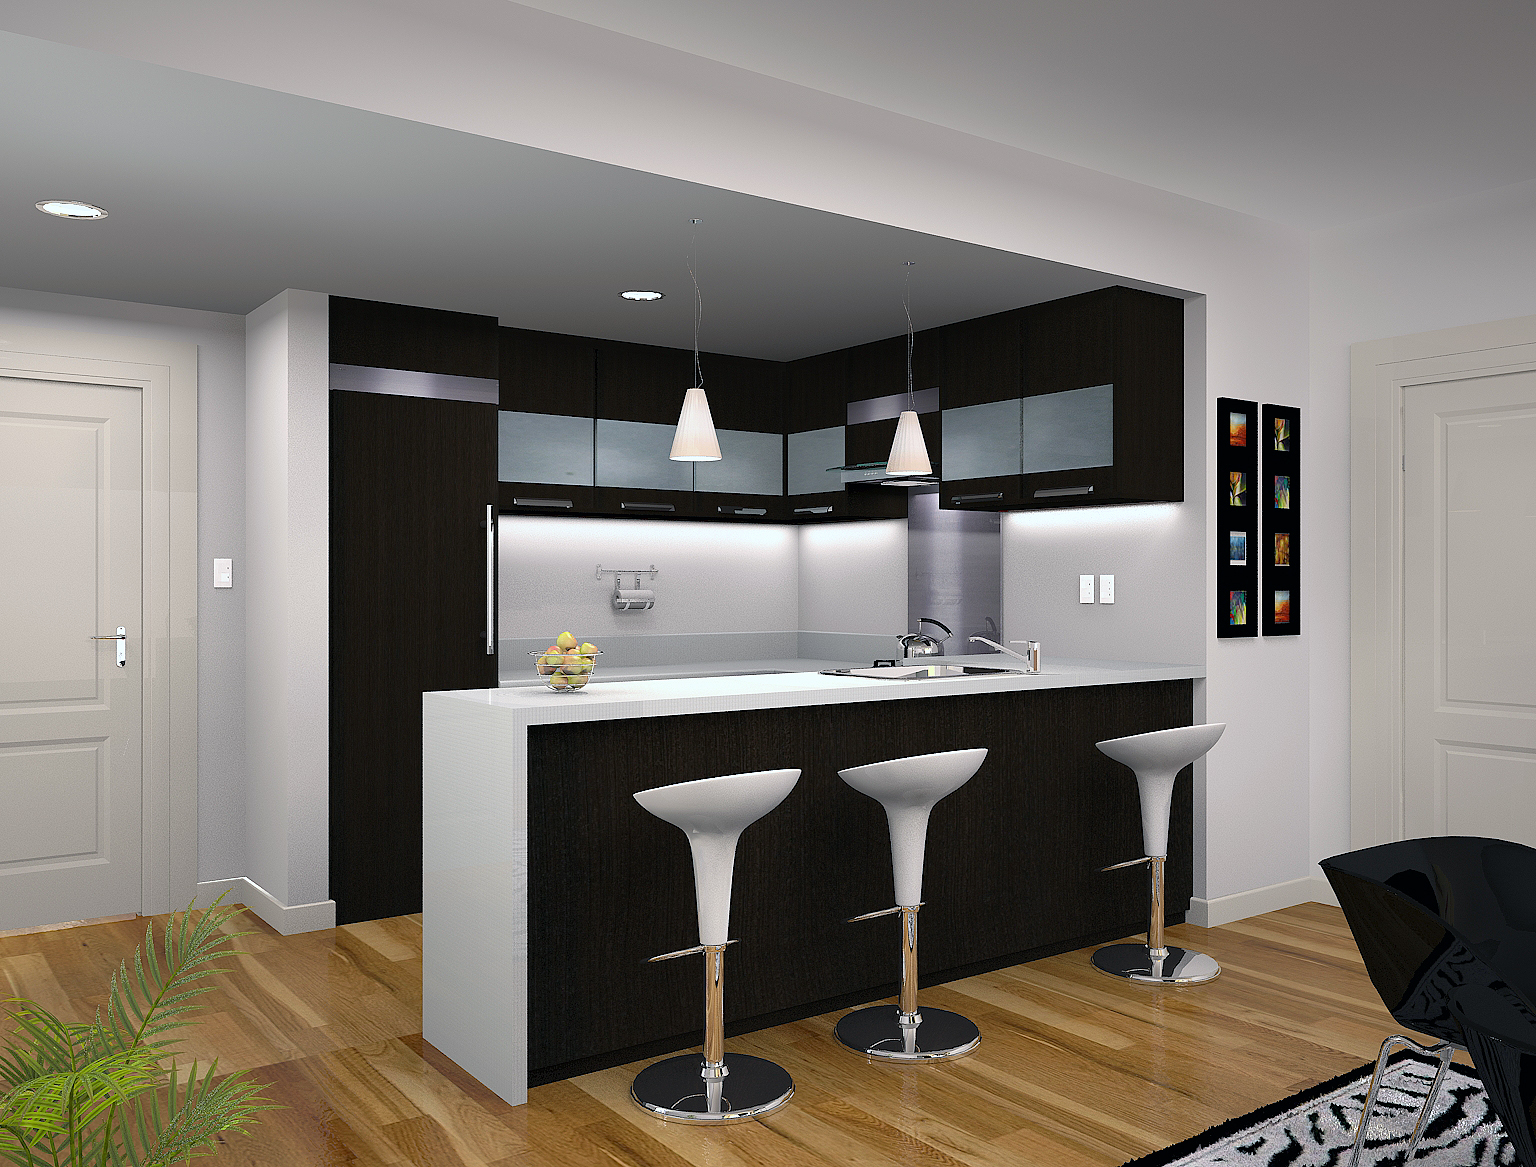 Angelo aguilar interior design portfolio kitchen condo for Small kitchen designs for condos